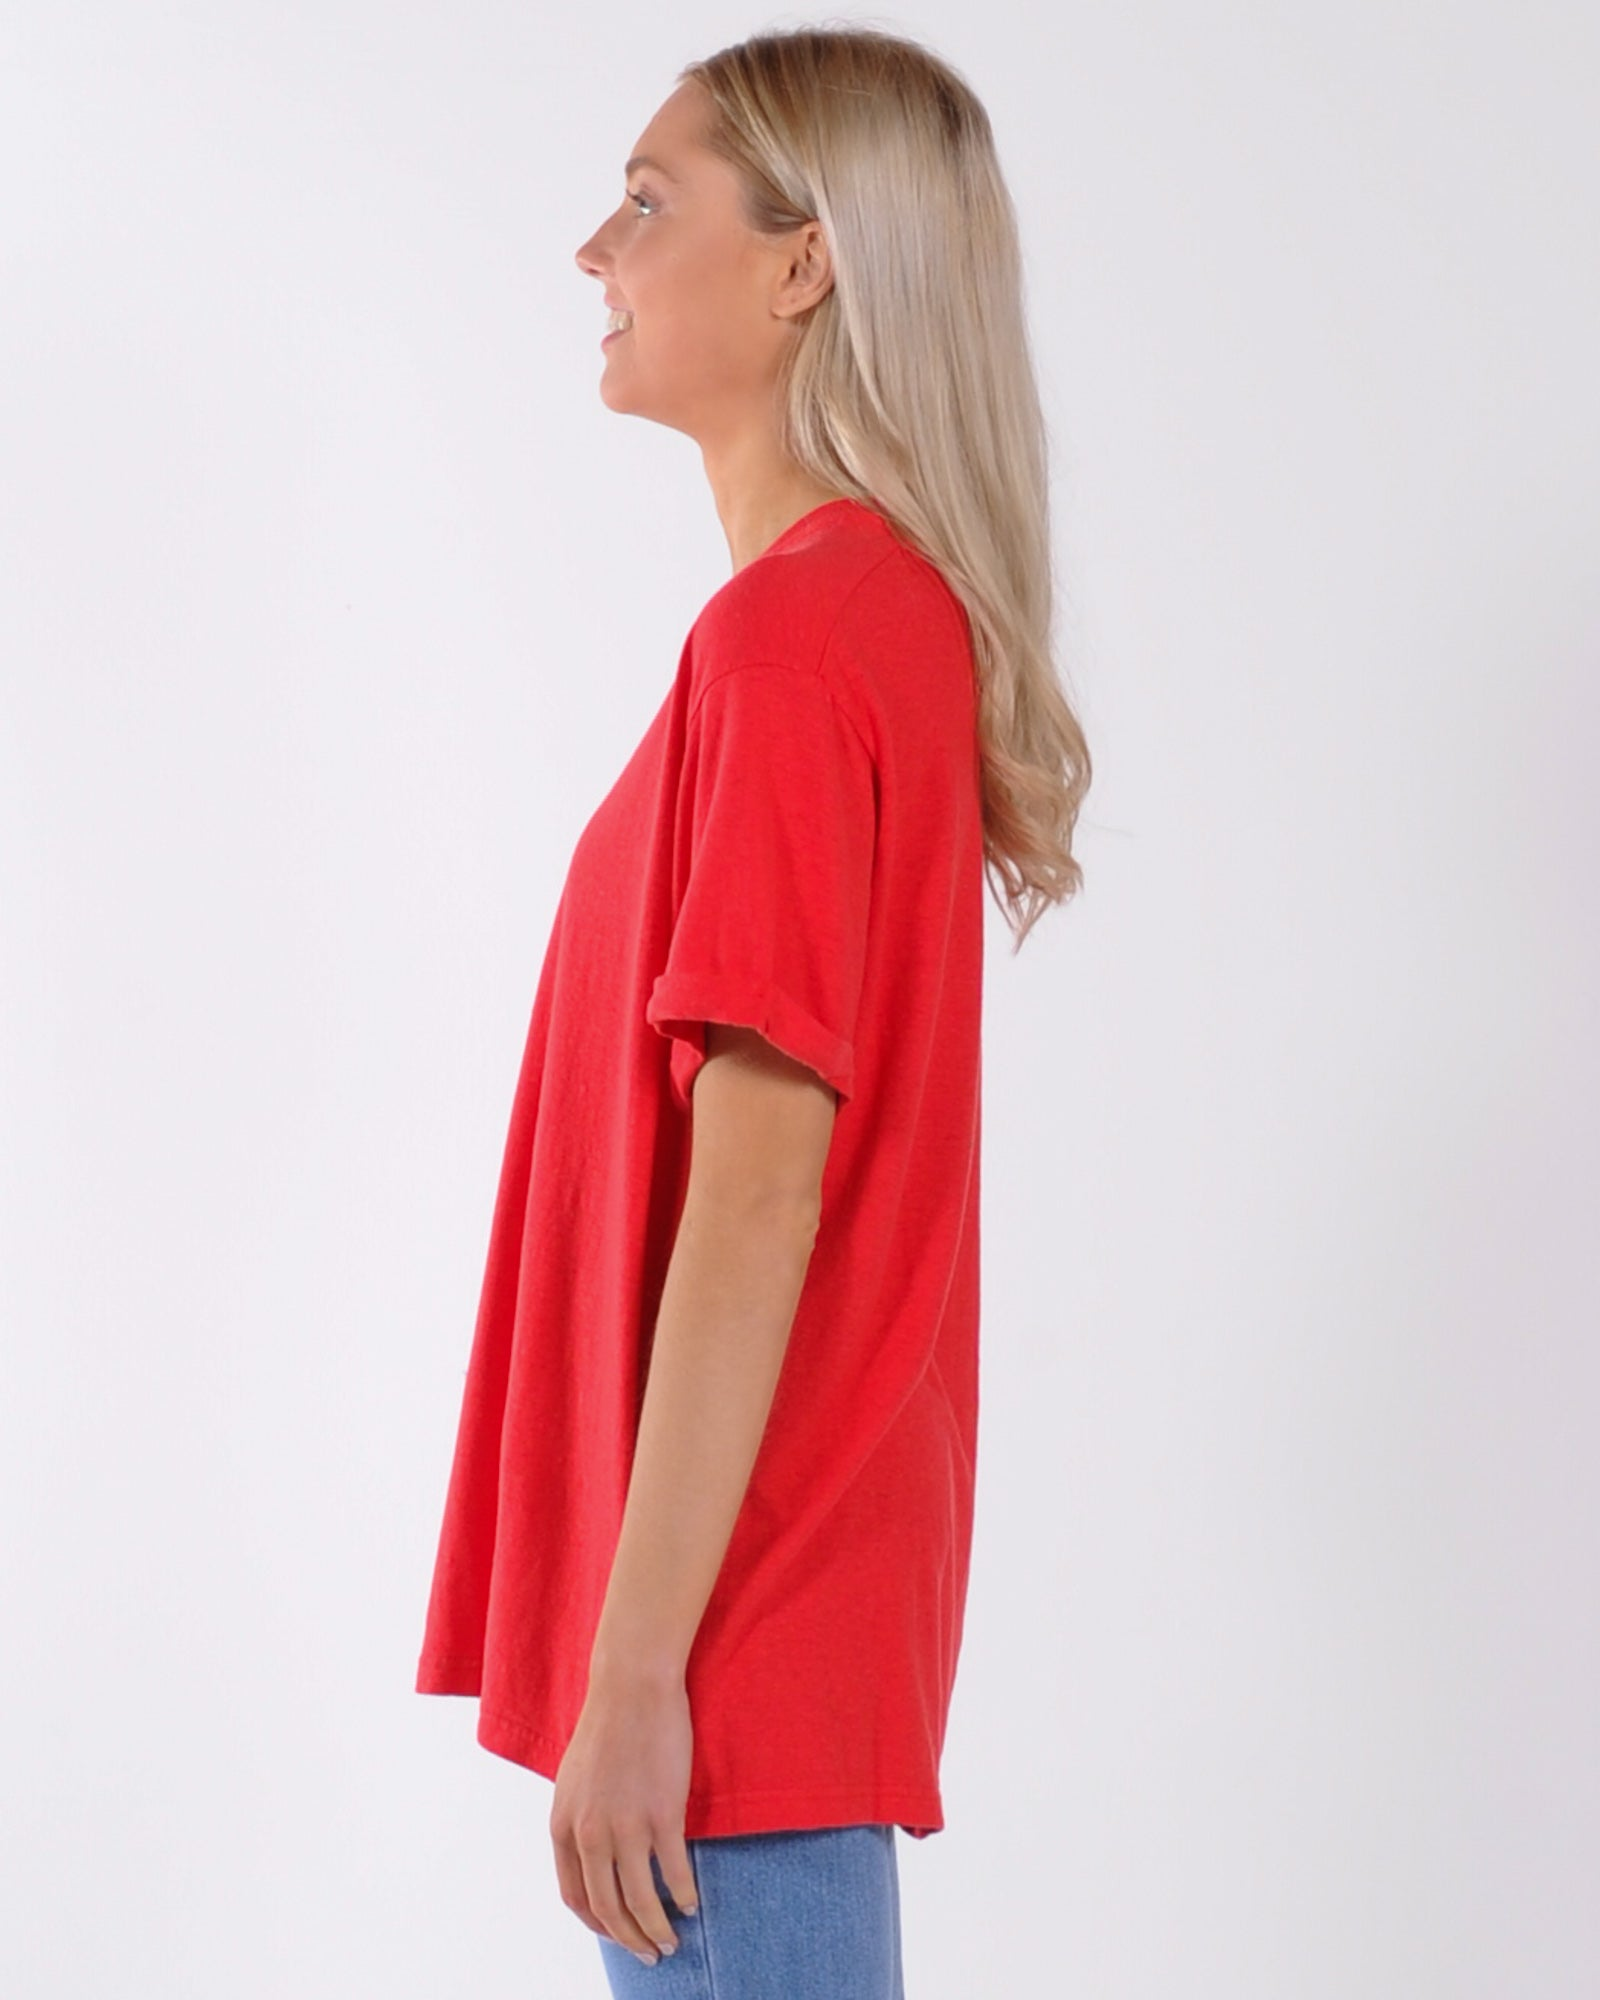 Afends Hemp Revolution Oversized Tee - Flame Red